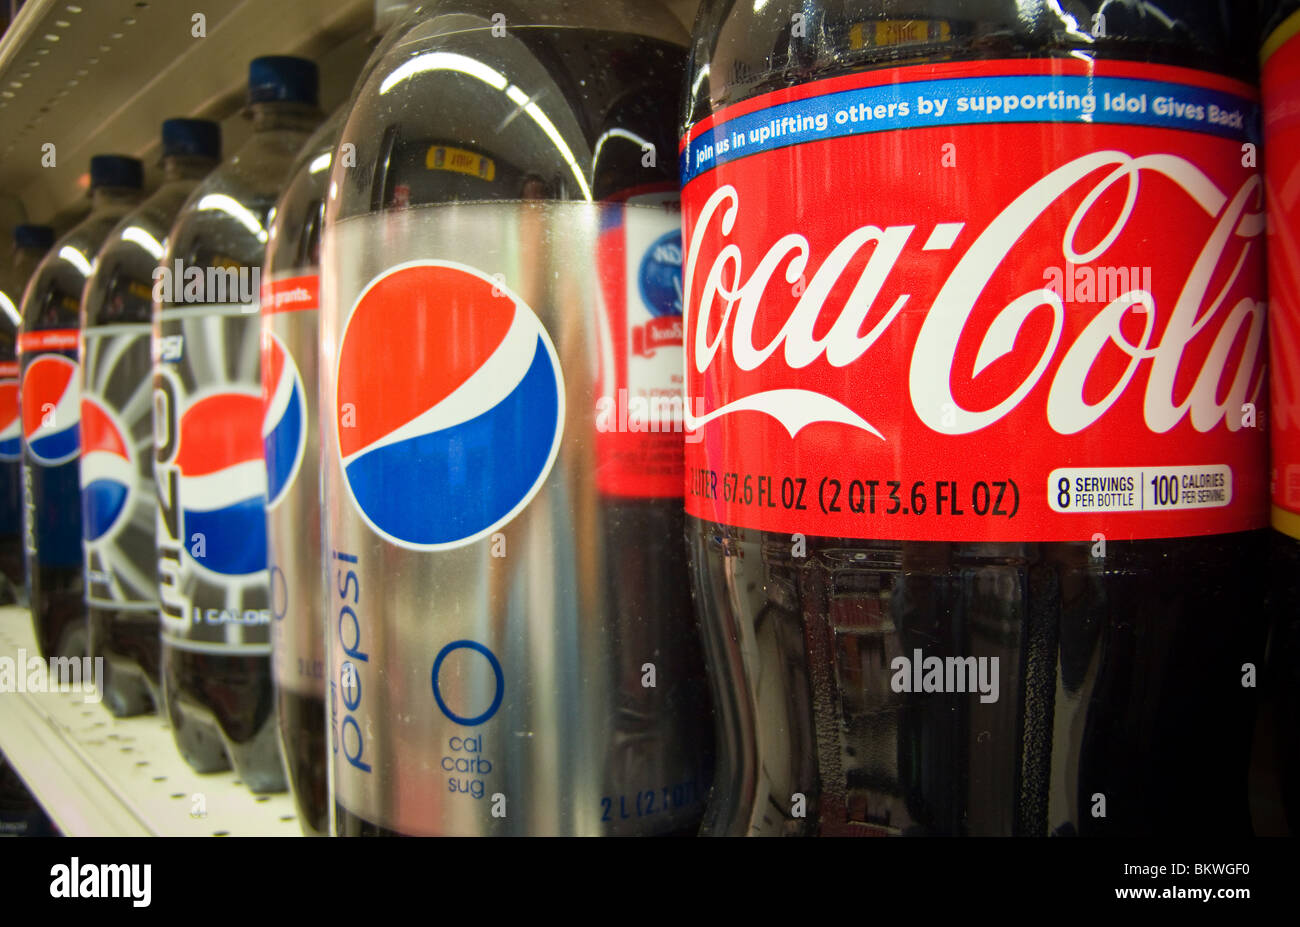 Bottles of Pepsi-Cola and Coca-Cola on a supermarket shelf in New York - Stock Image